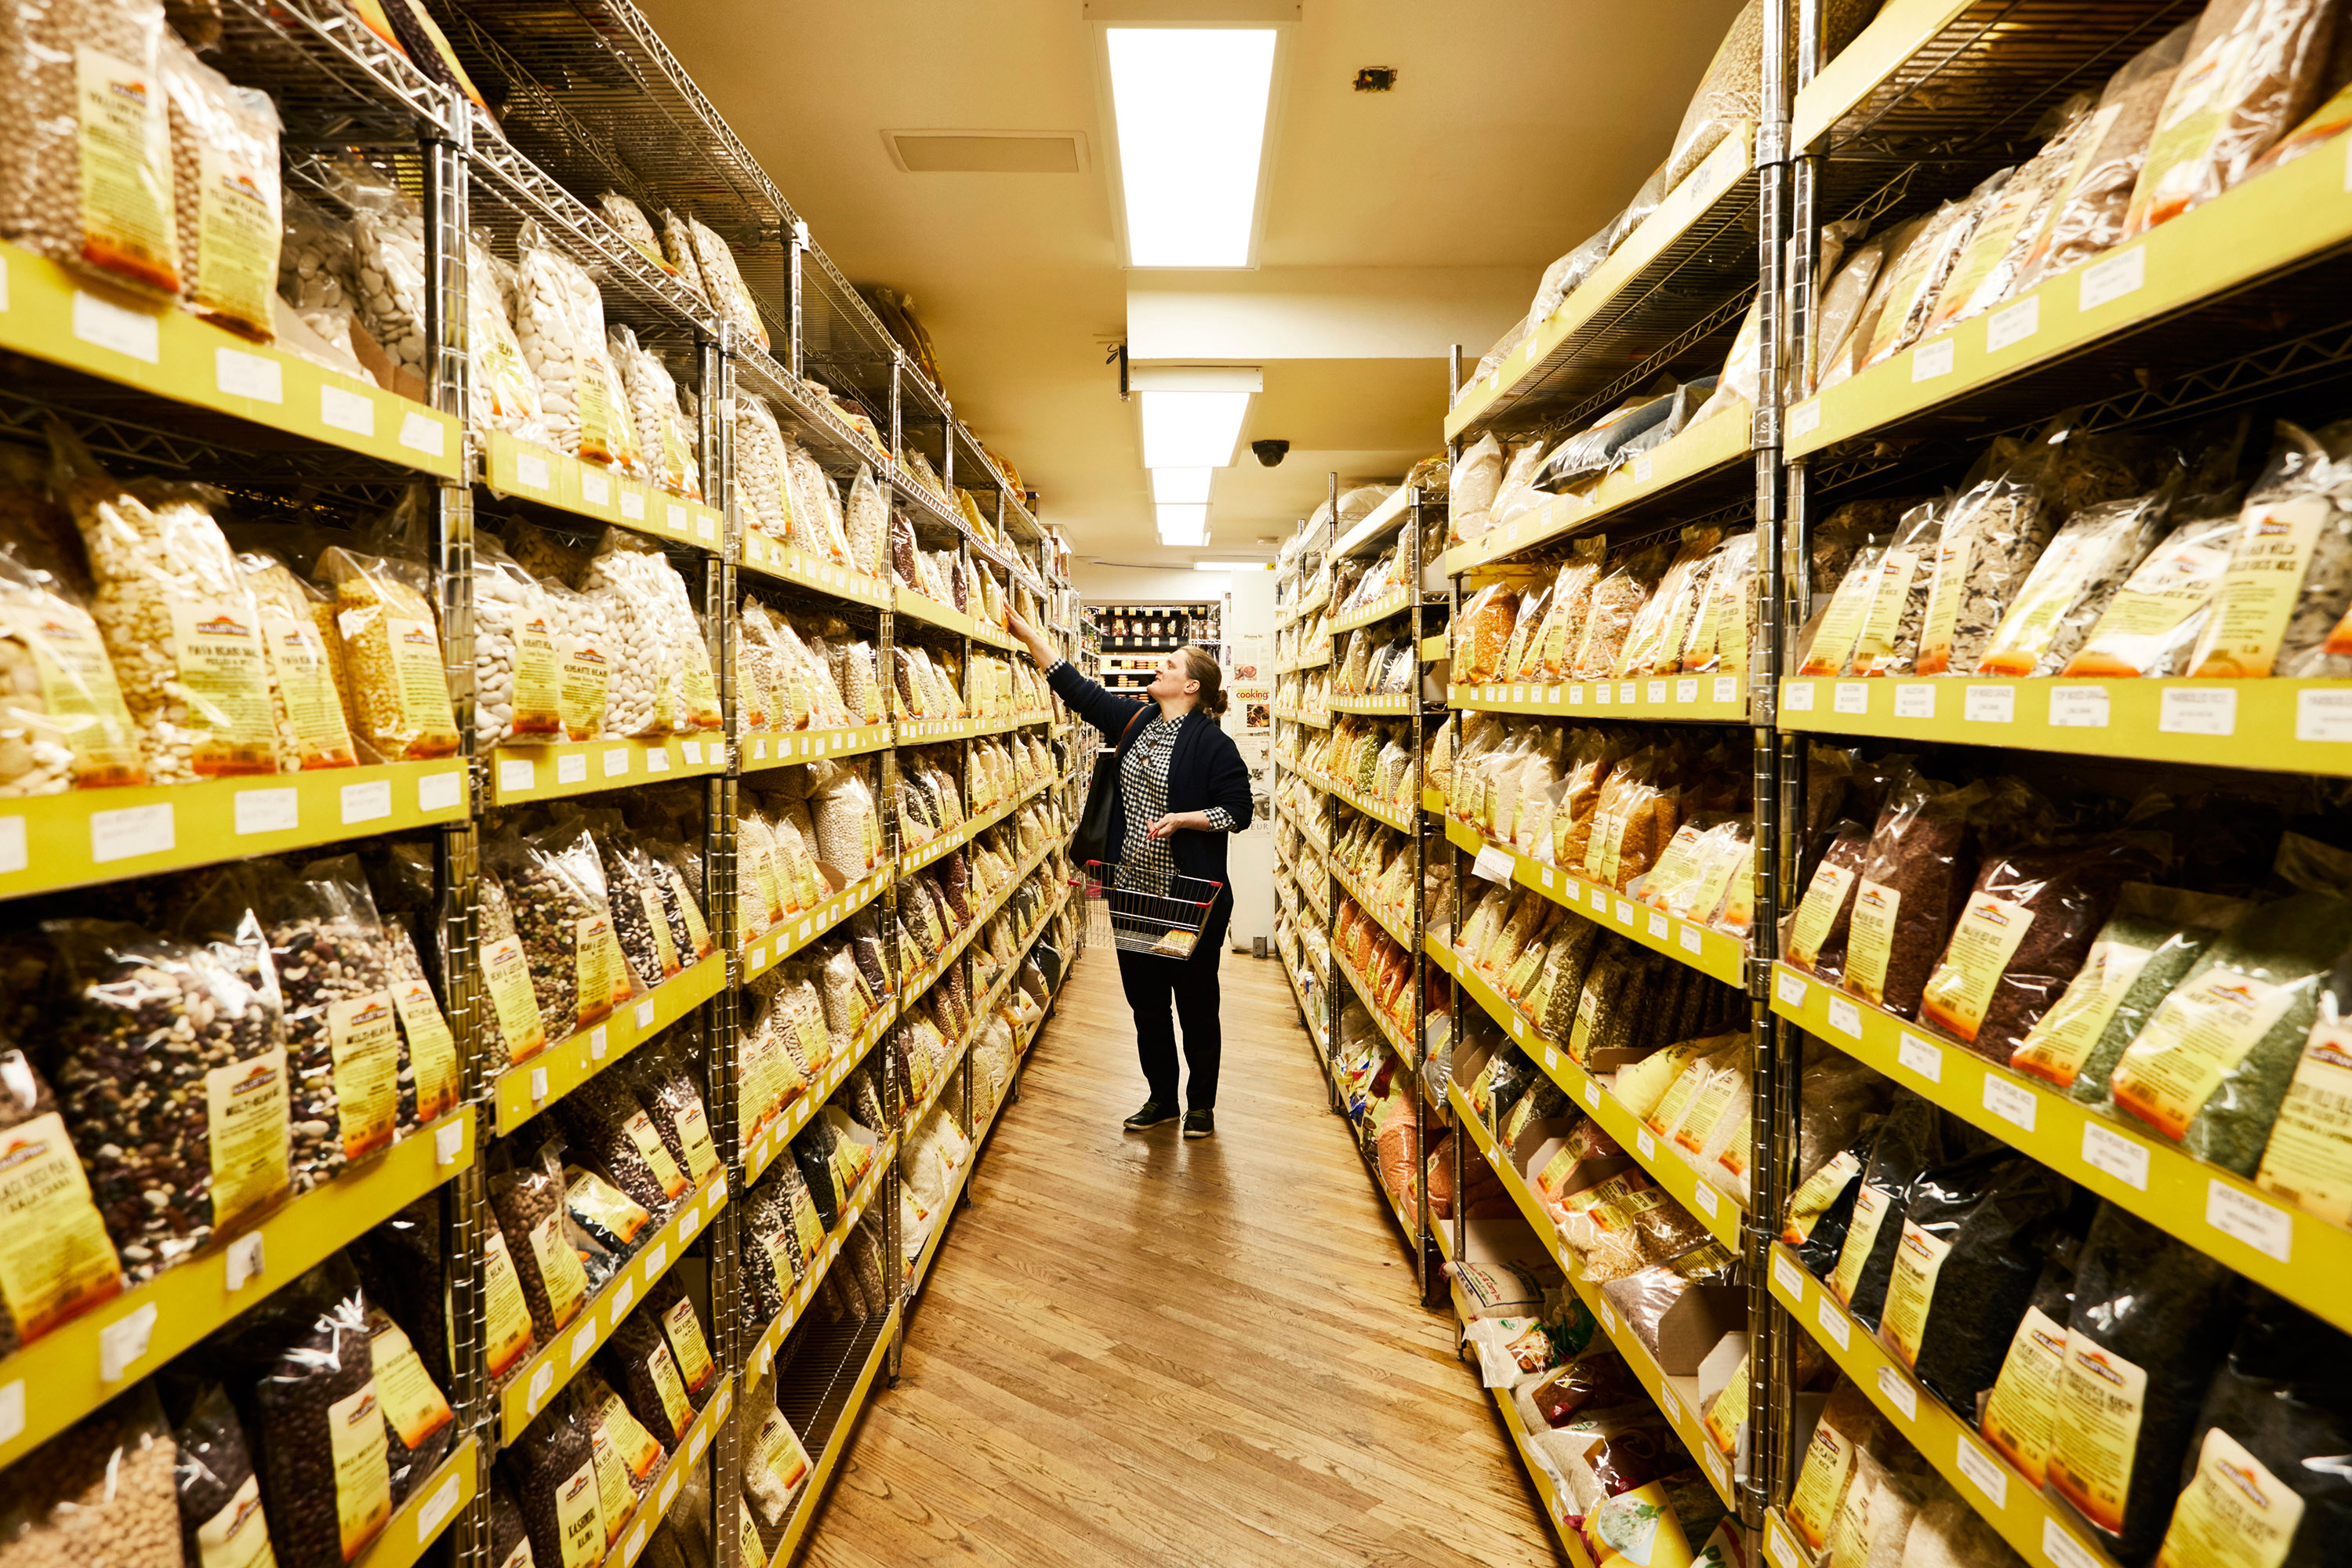 April Bloomfield in the aisles at Kalustyan's.